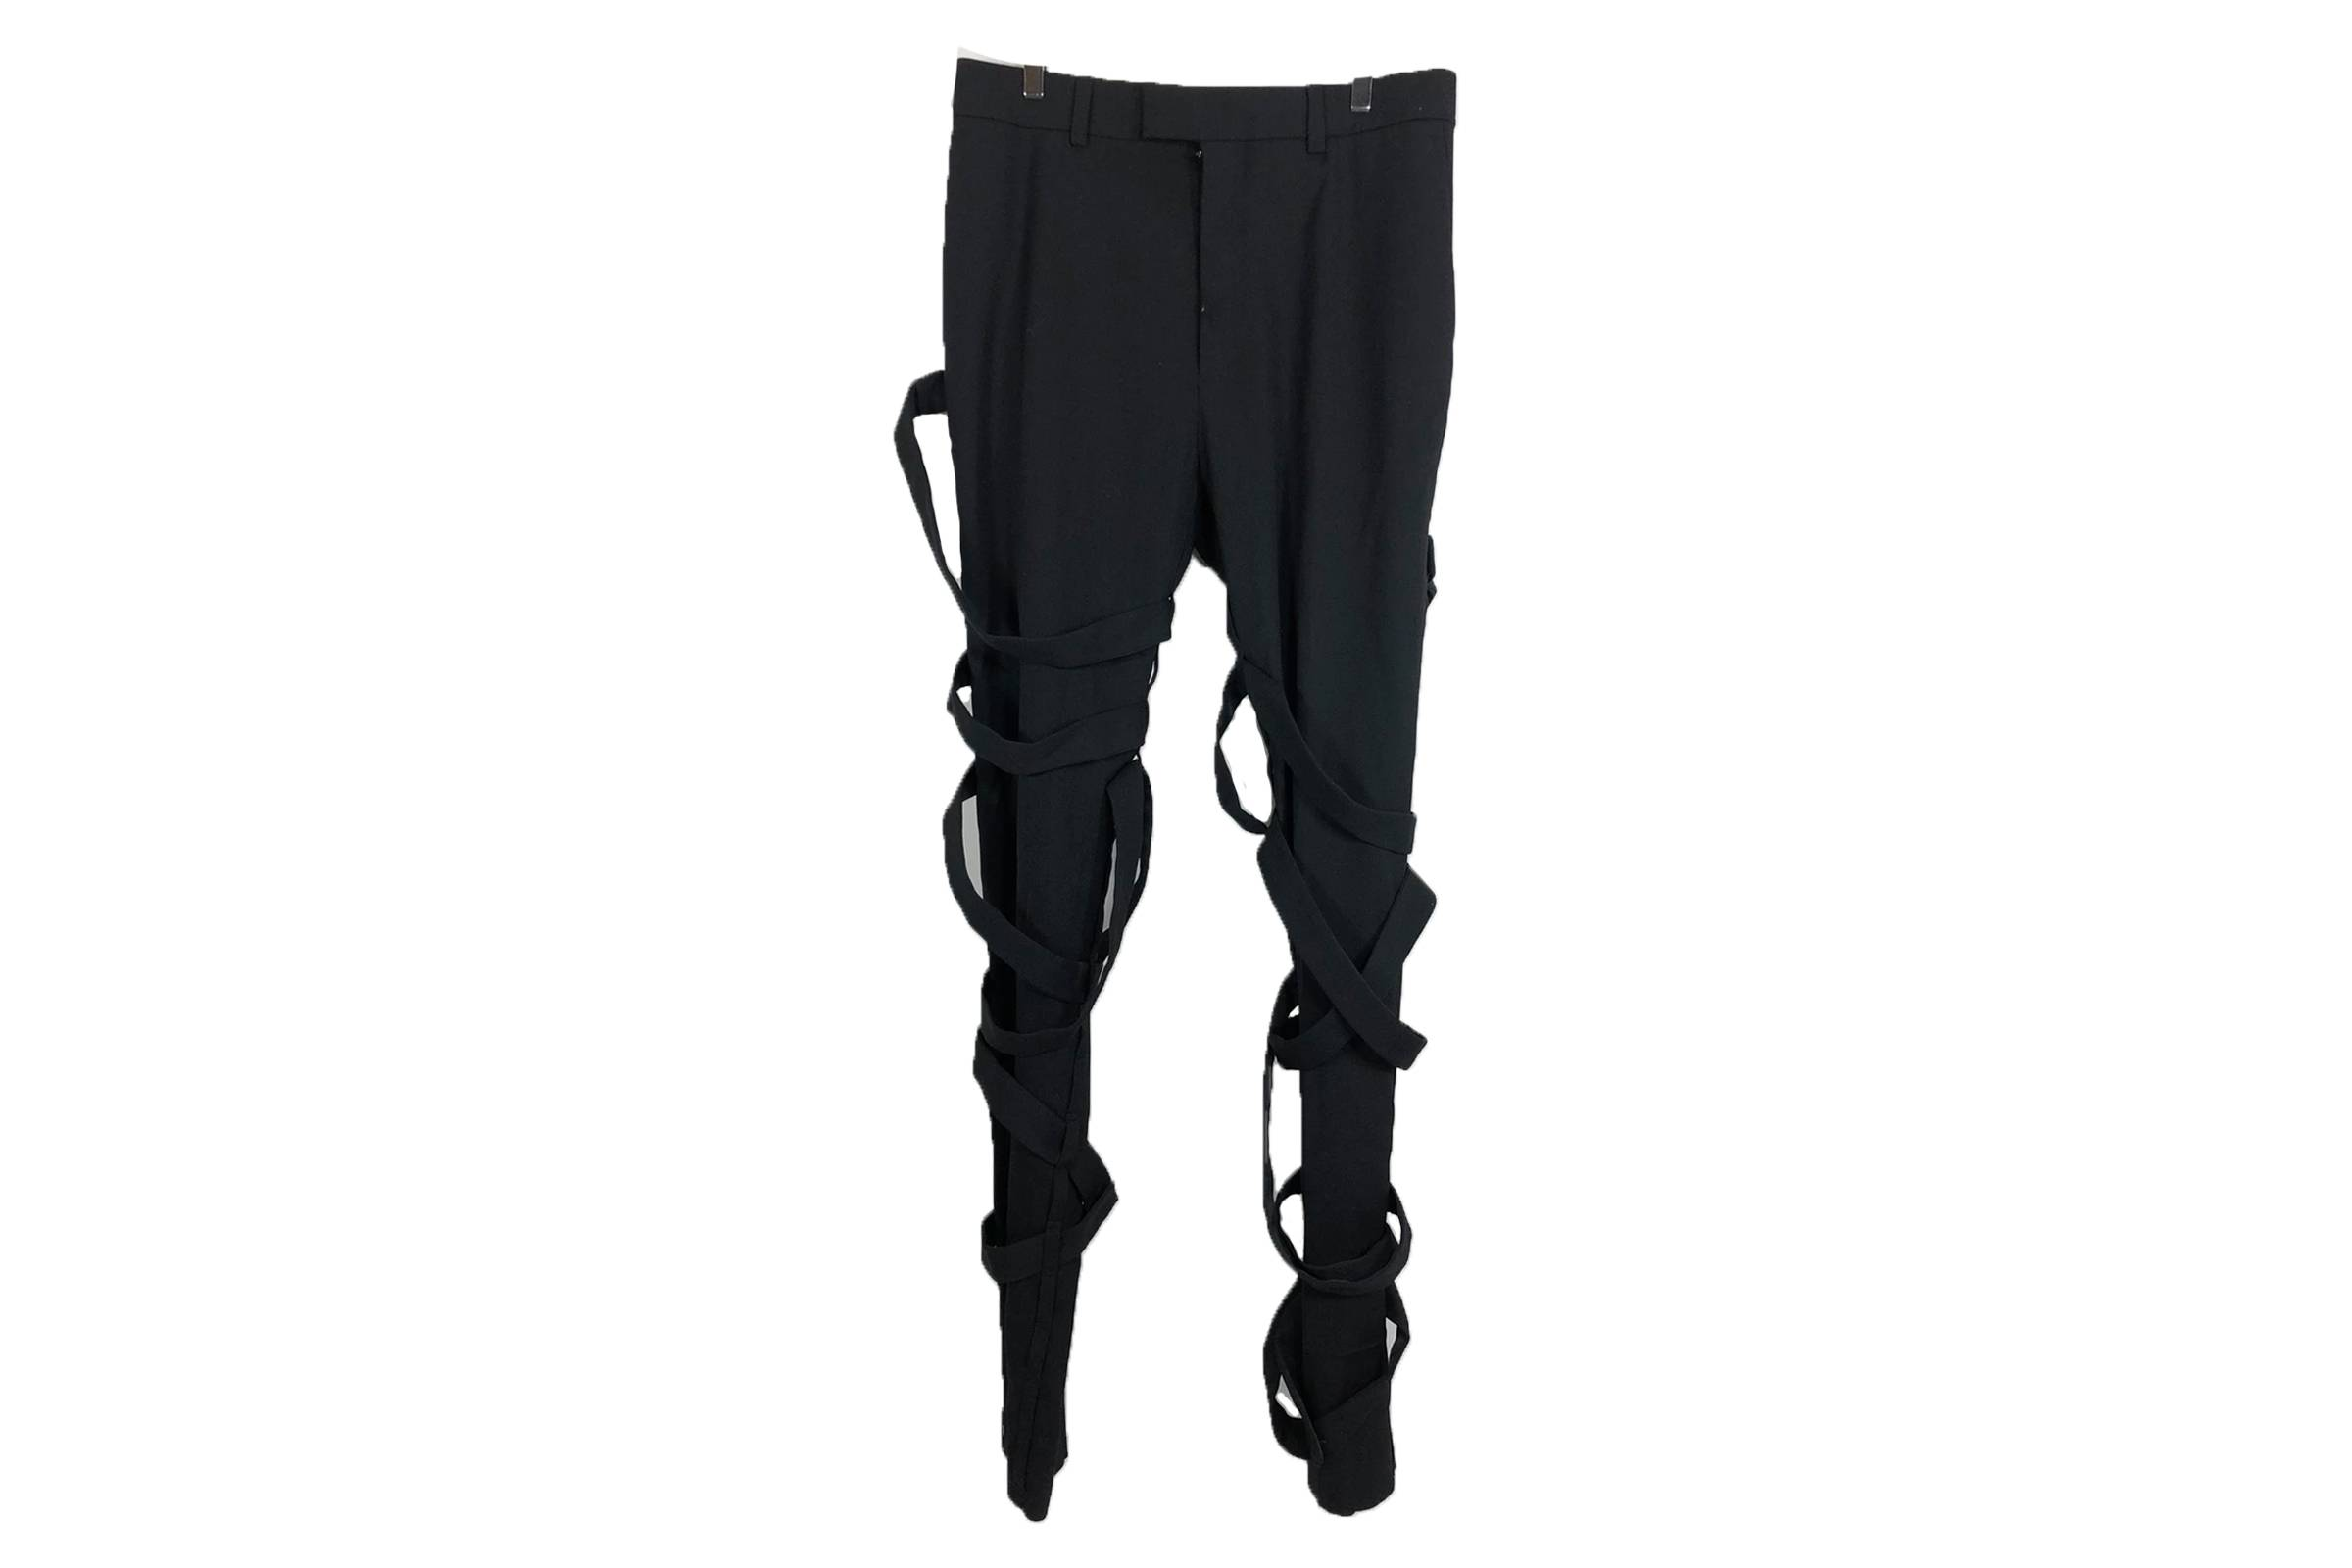 Louis Vuitton Sample Bondage Pant